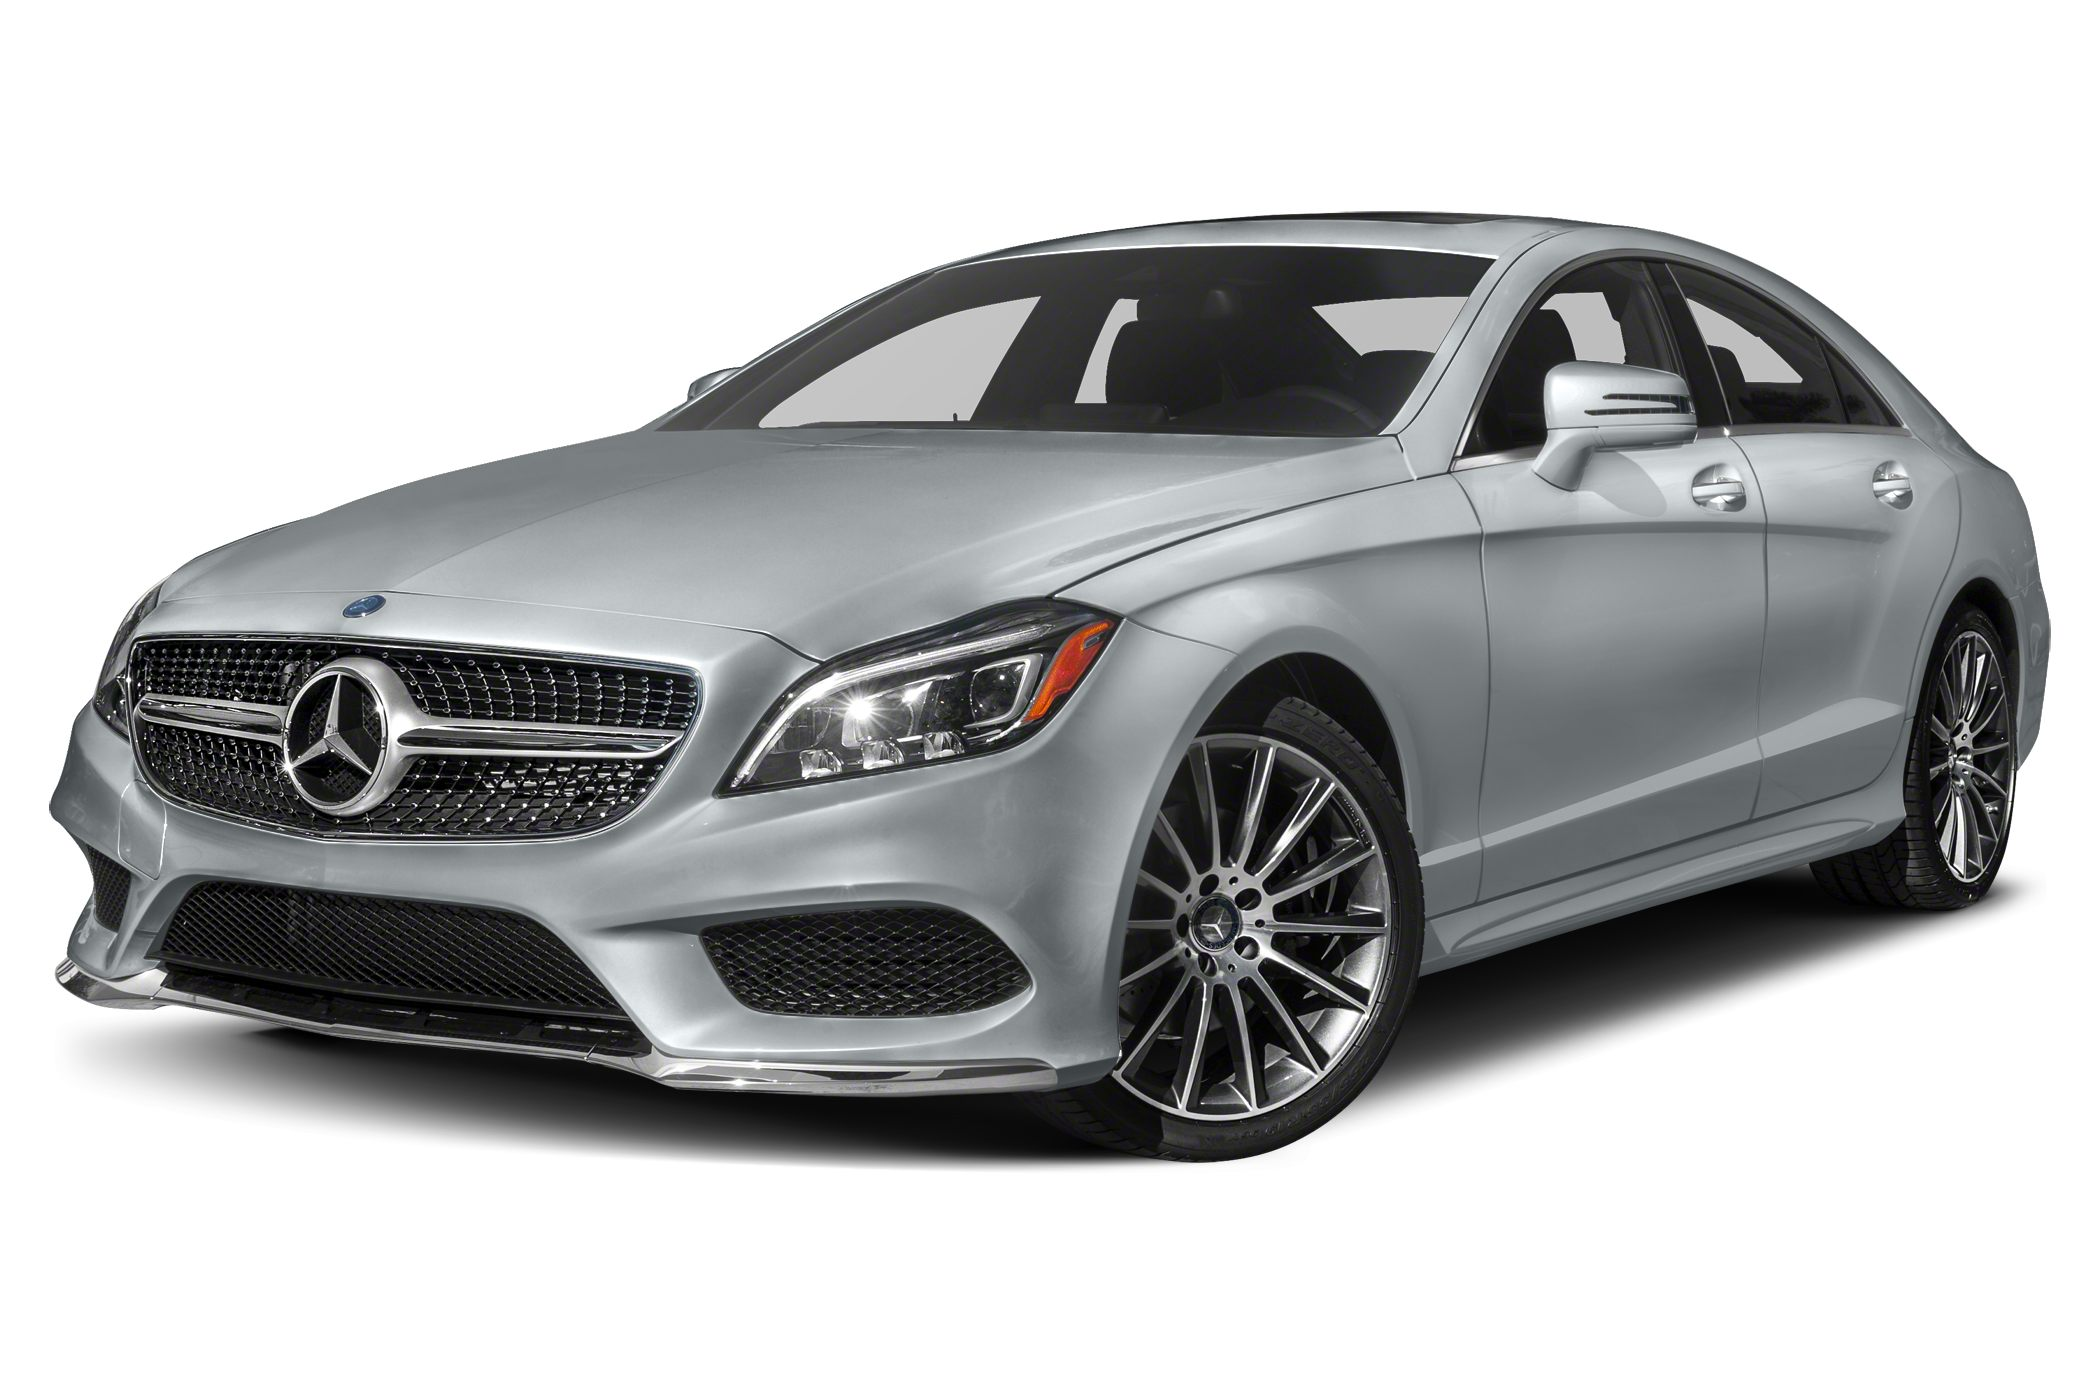 2012 bmw m550d xdrive leaves us both giddy and quietly for Mercedes benz sedan models